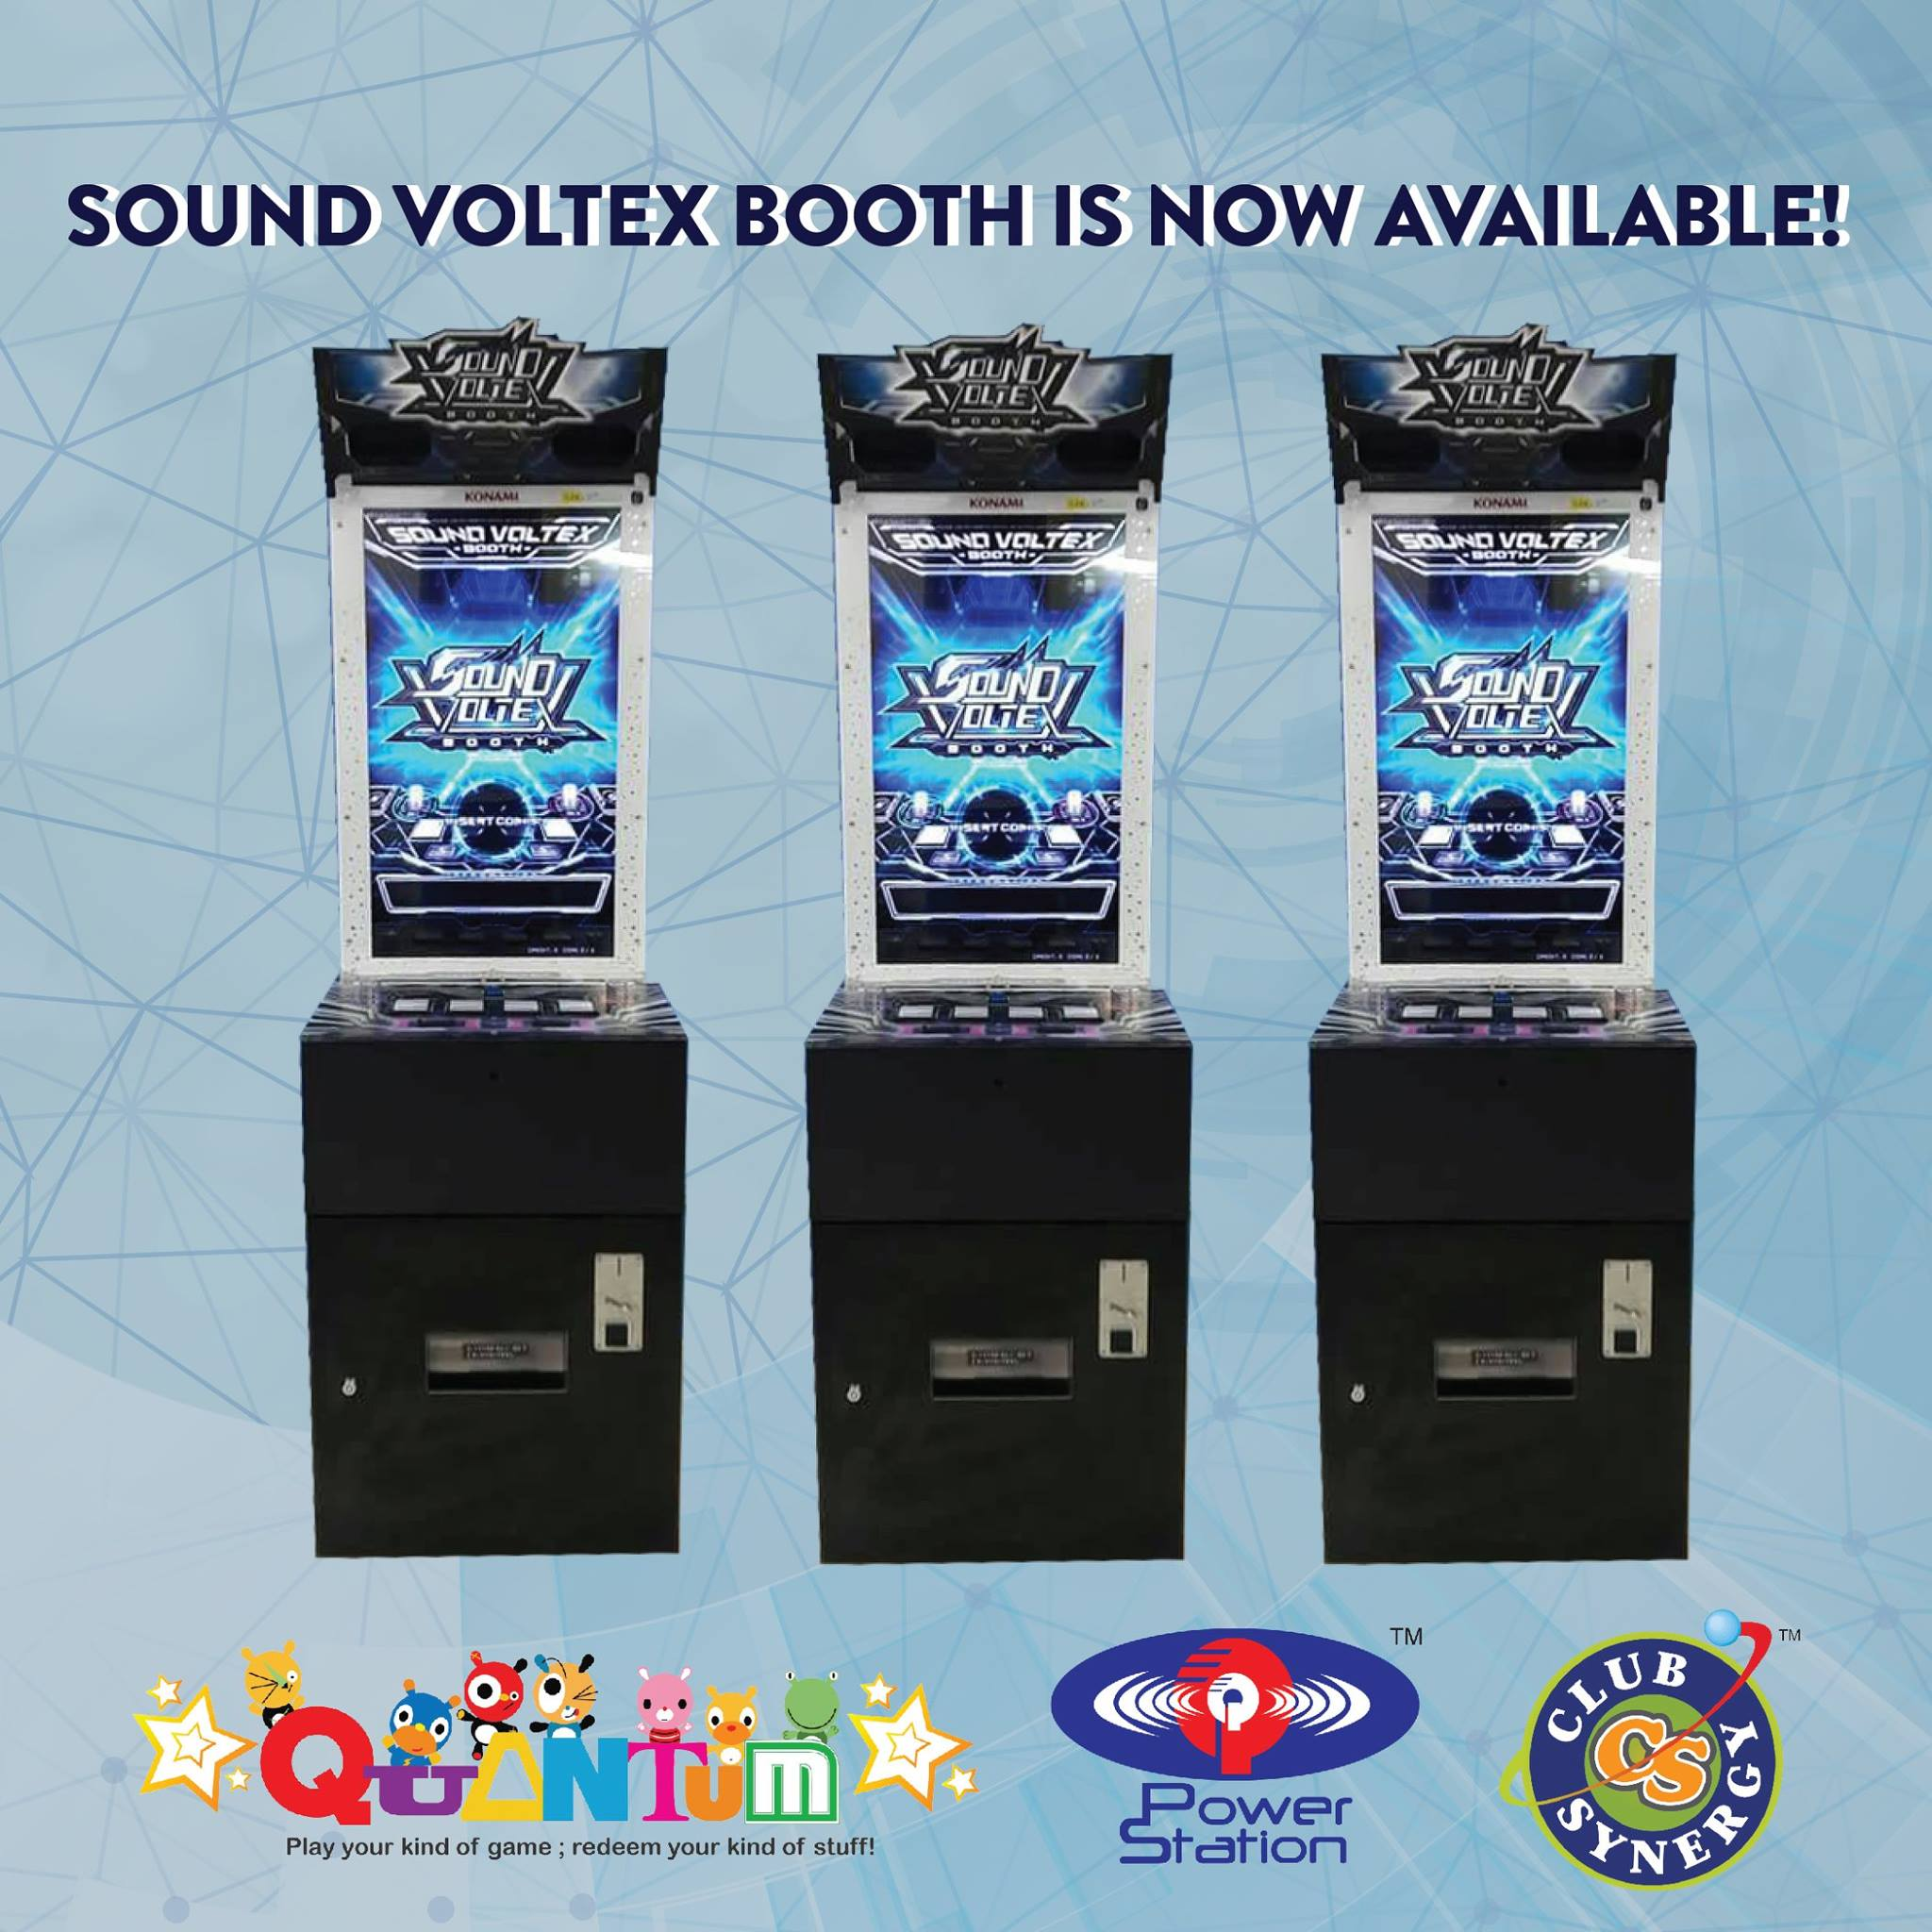 SOUND VOLTEX BOOTH (Offline Ver ) Available at Select Quantum